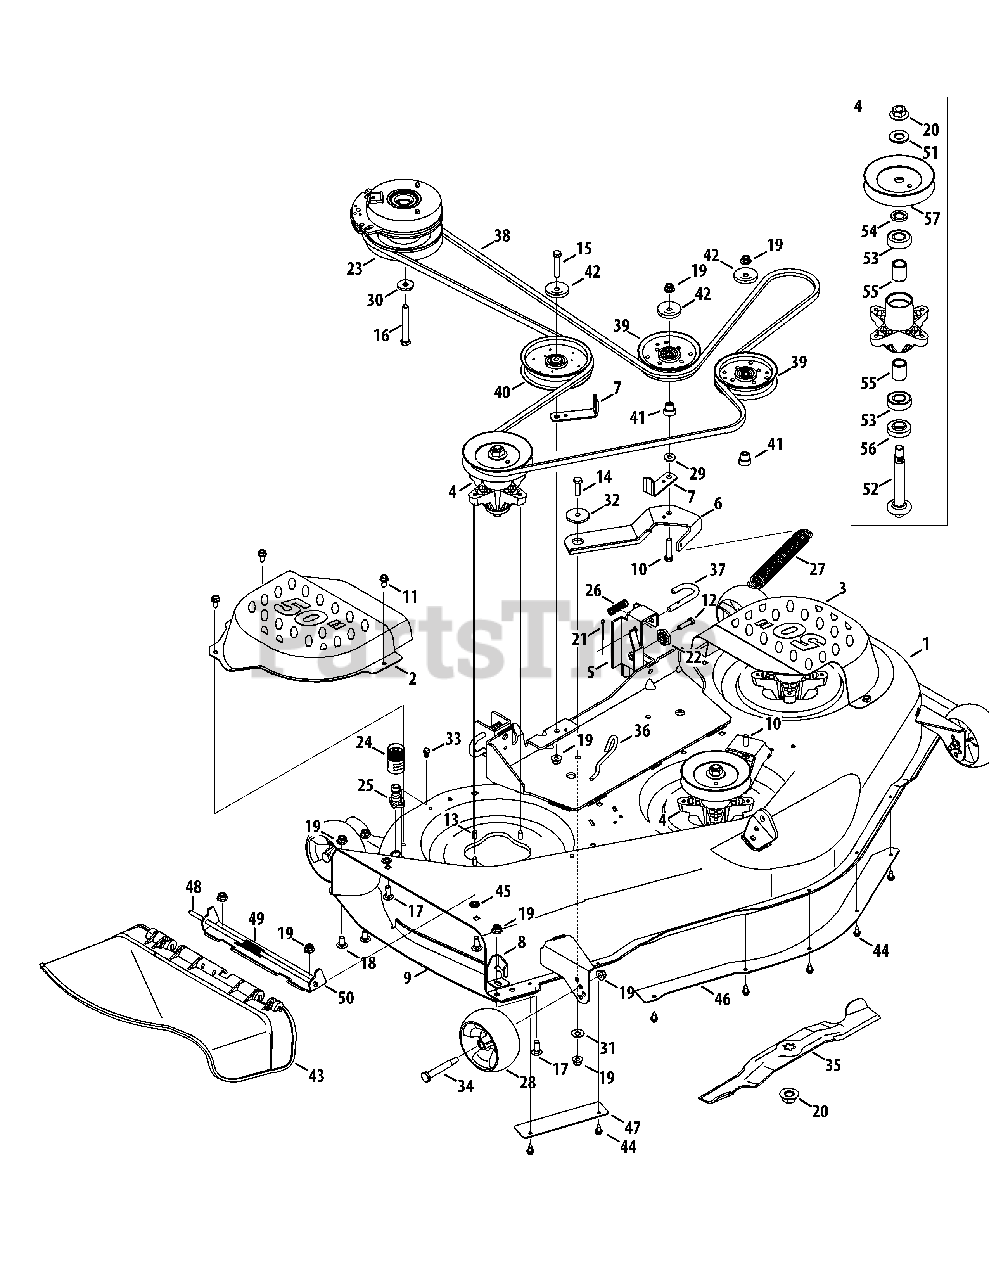 Troy-Bilt Parts on the Mower Deck 50-Inch Diagram for